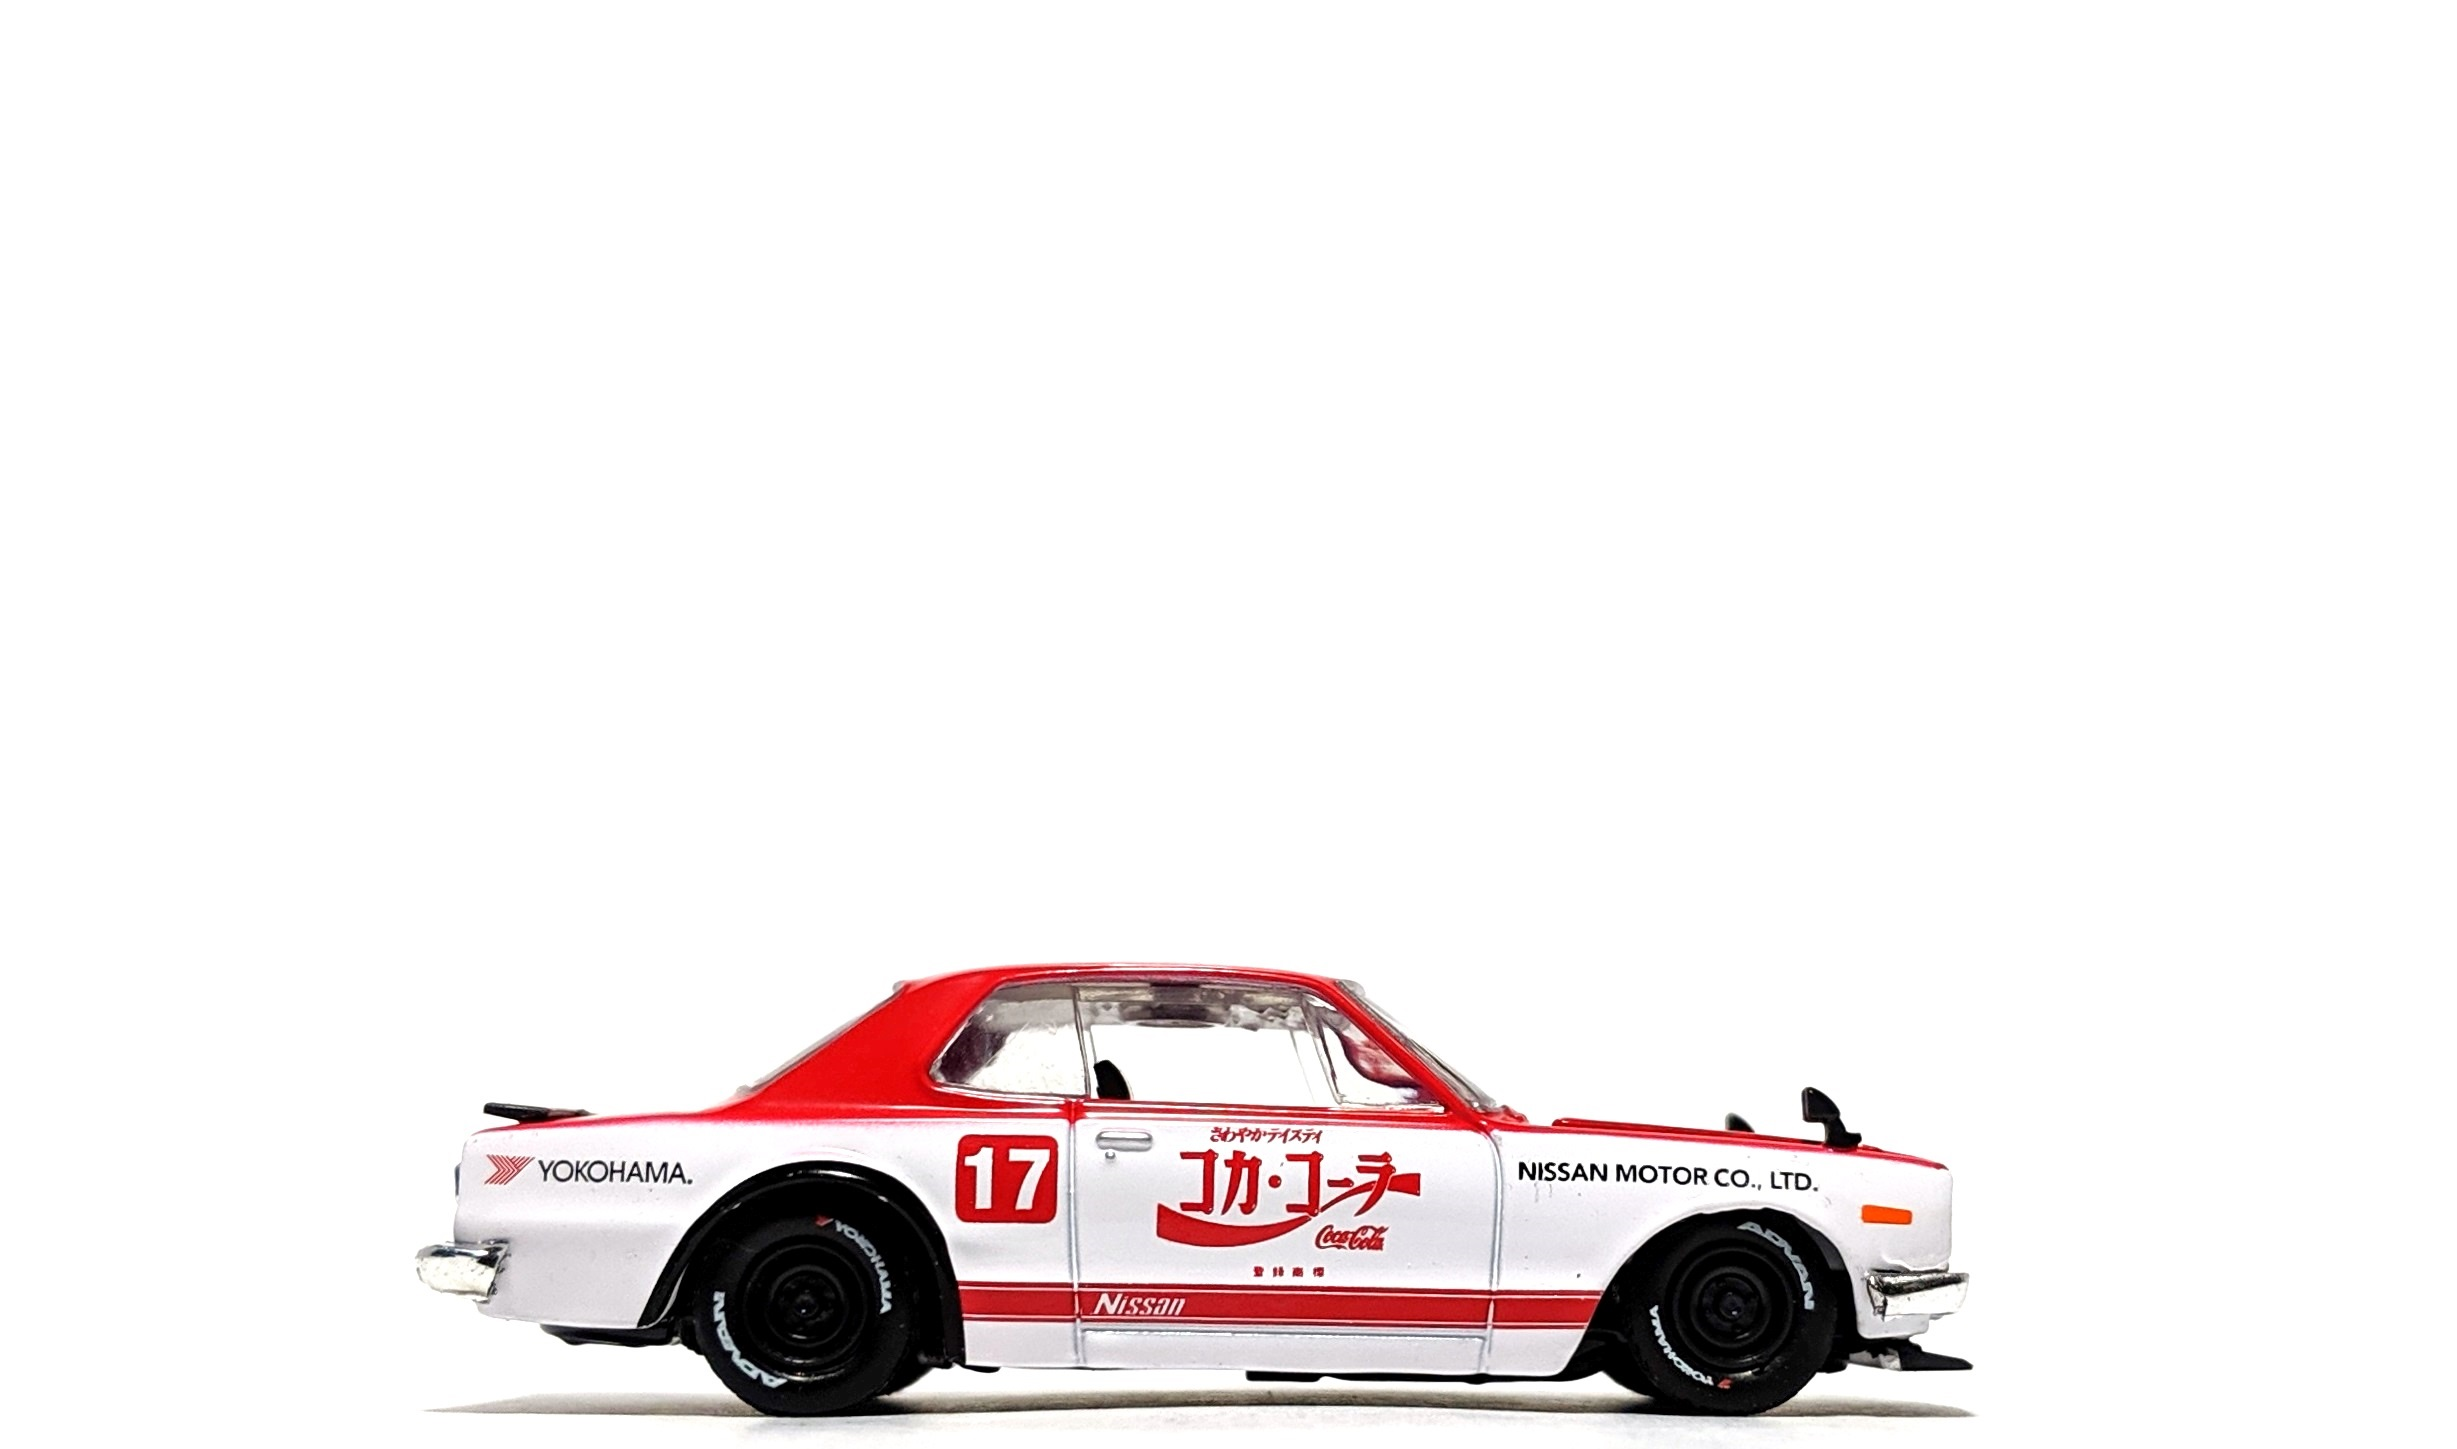 "1971 Nissan Skyline GT-R (C10) ""Coca-Cola"" - M2 Machines"